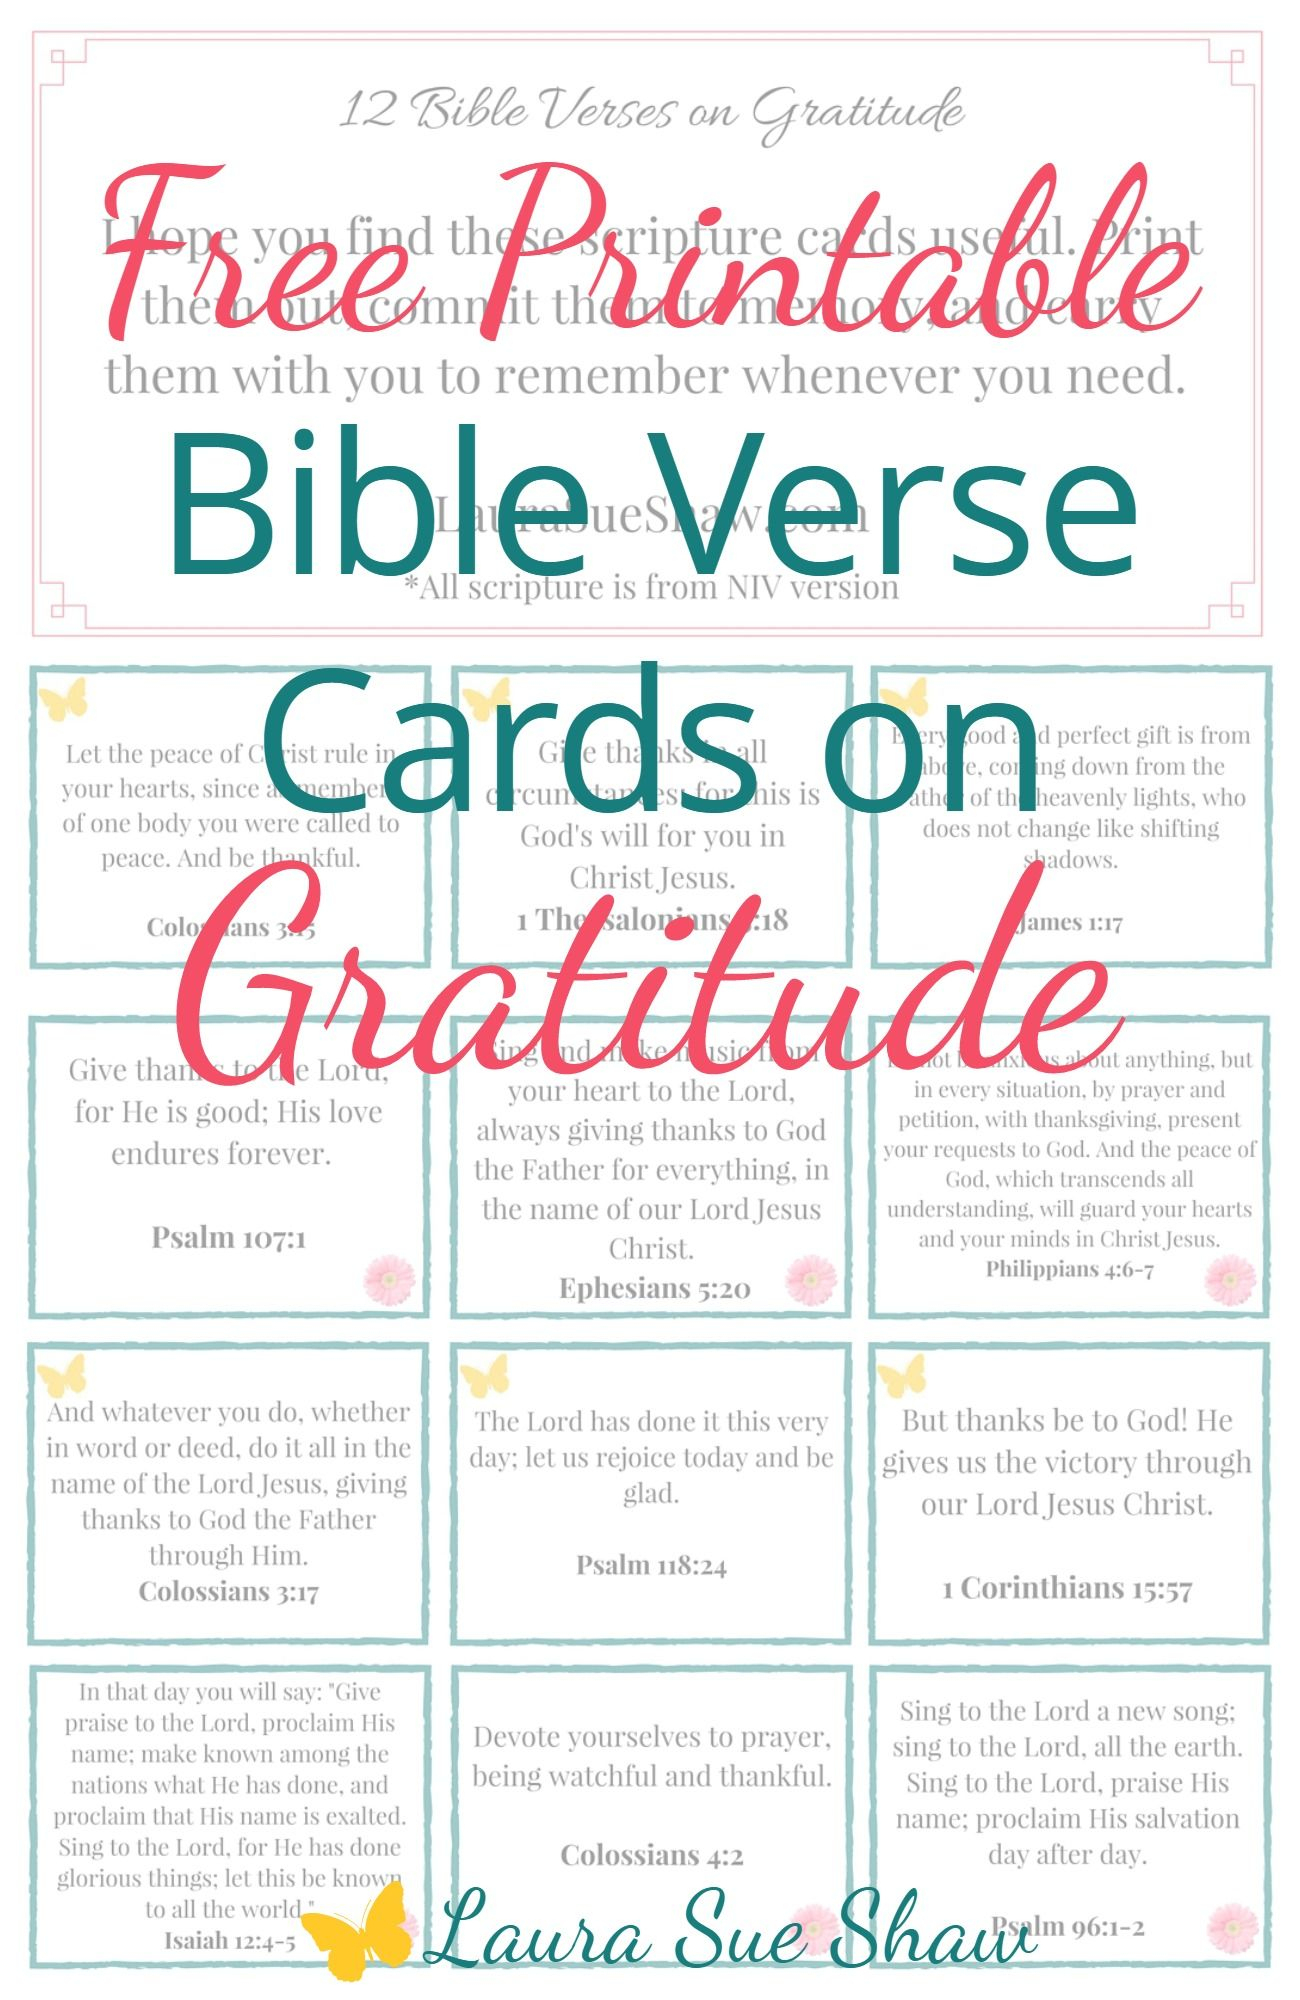 Free Printable Bible Verse Cards On Gratitude | Prayer | Bible - Free Printable Bible Verse Cards